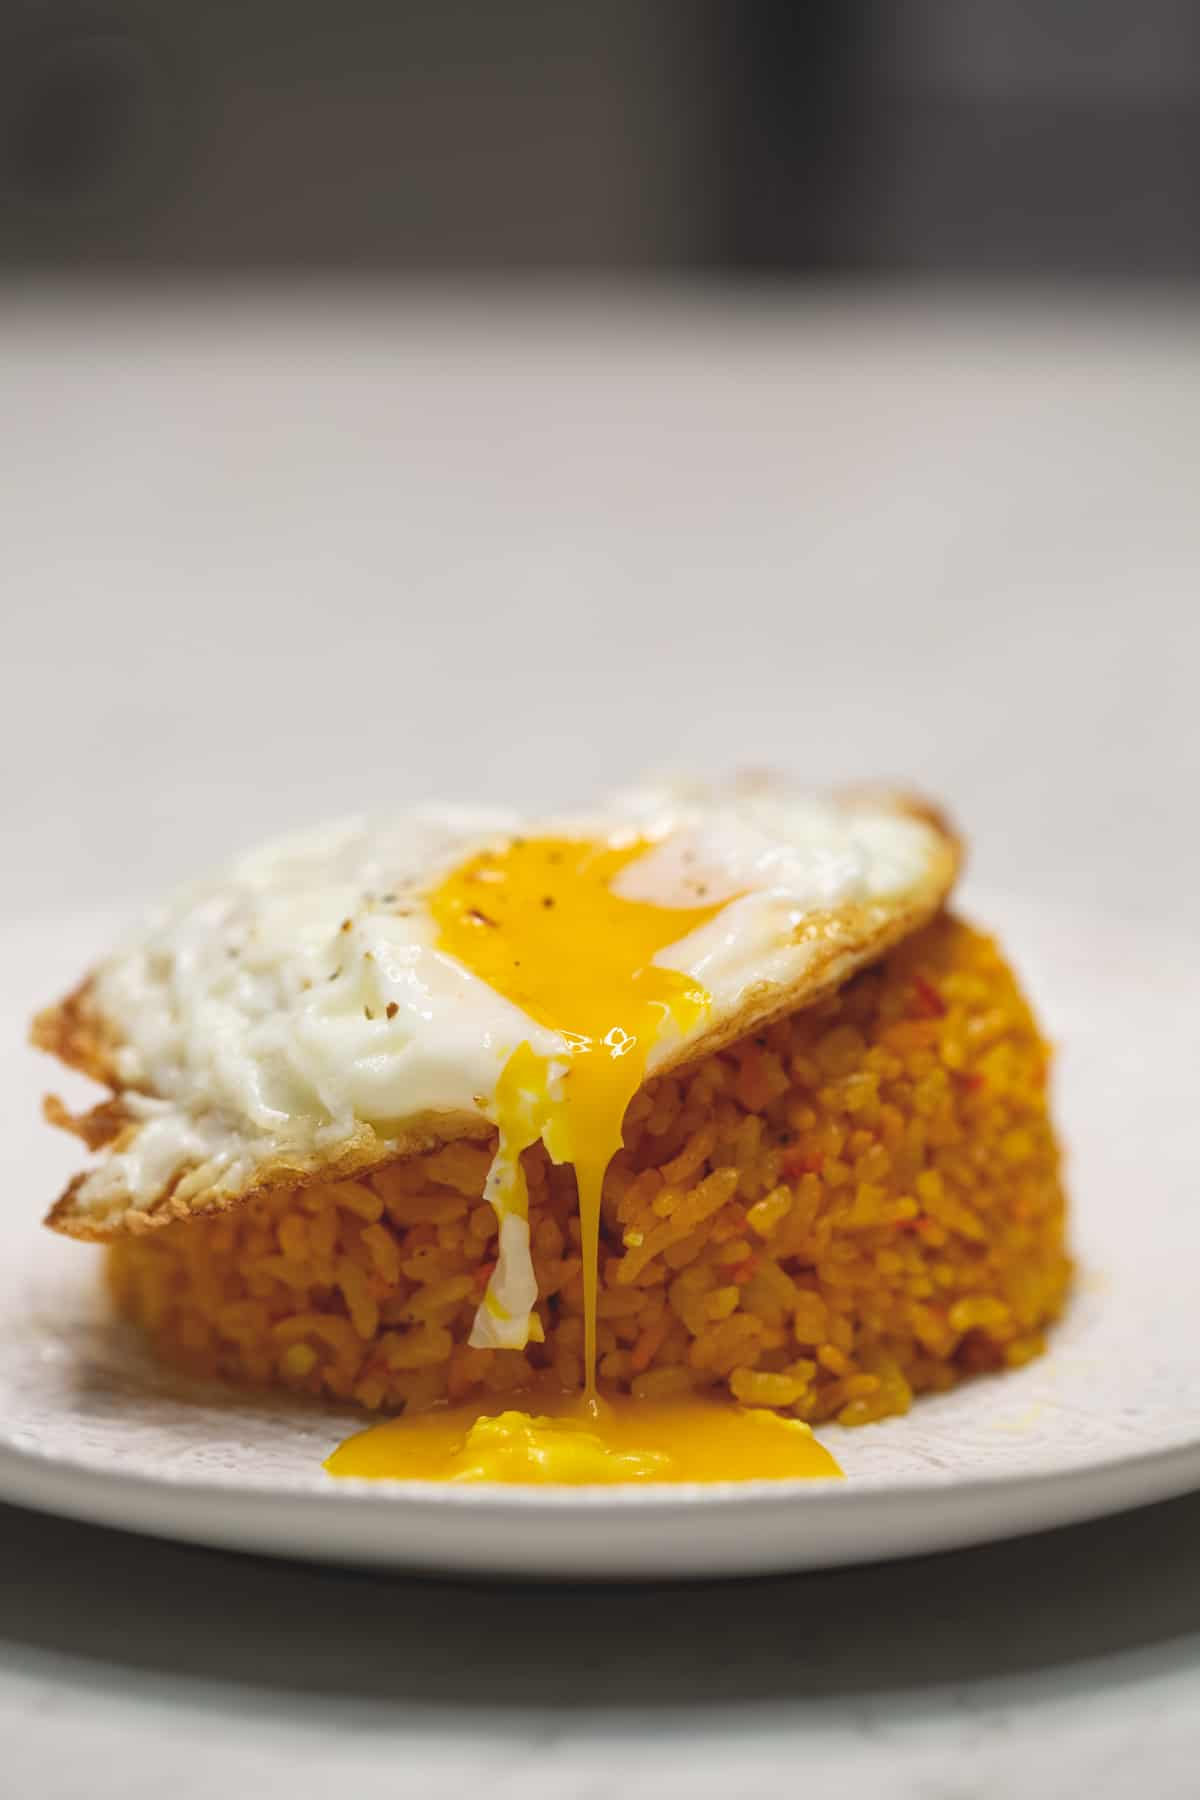 java rice with fried egg on top